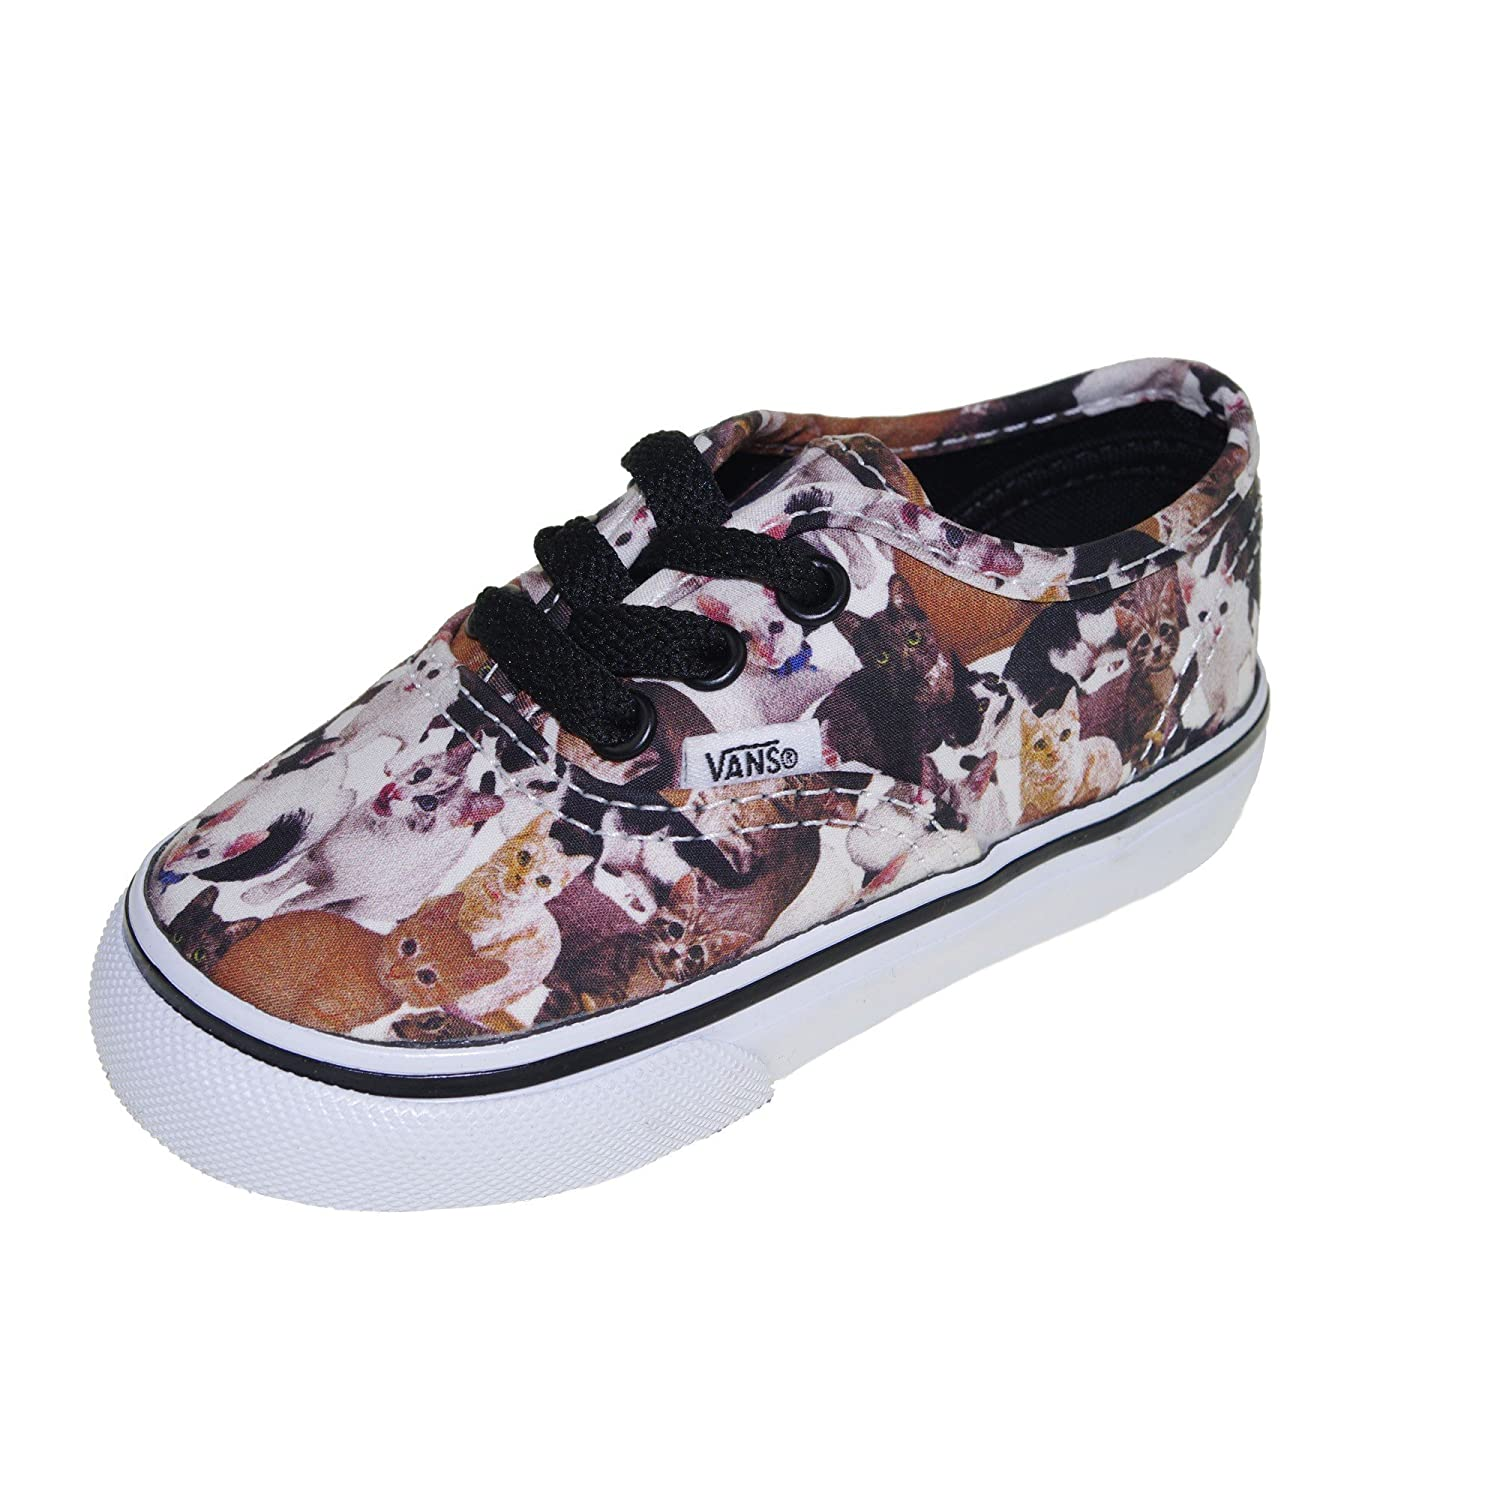 vans slip on shoes india